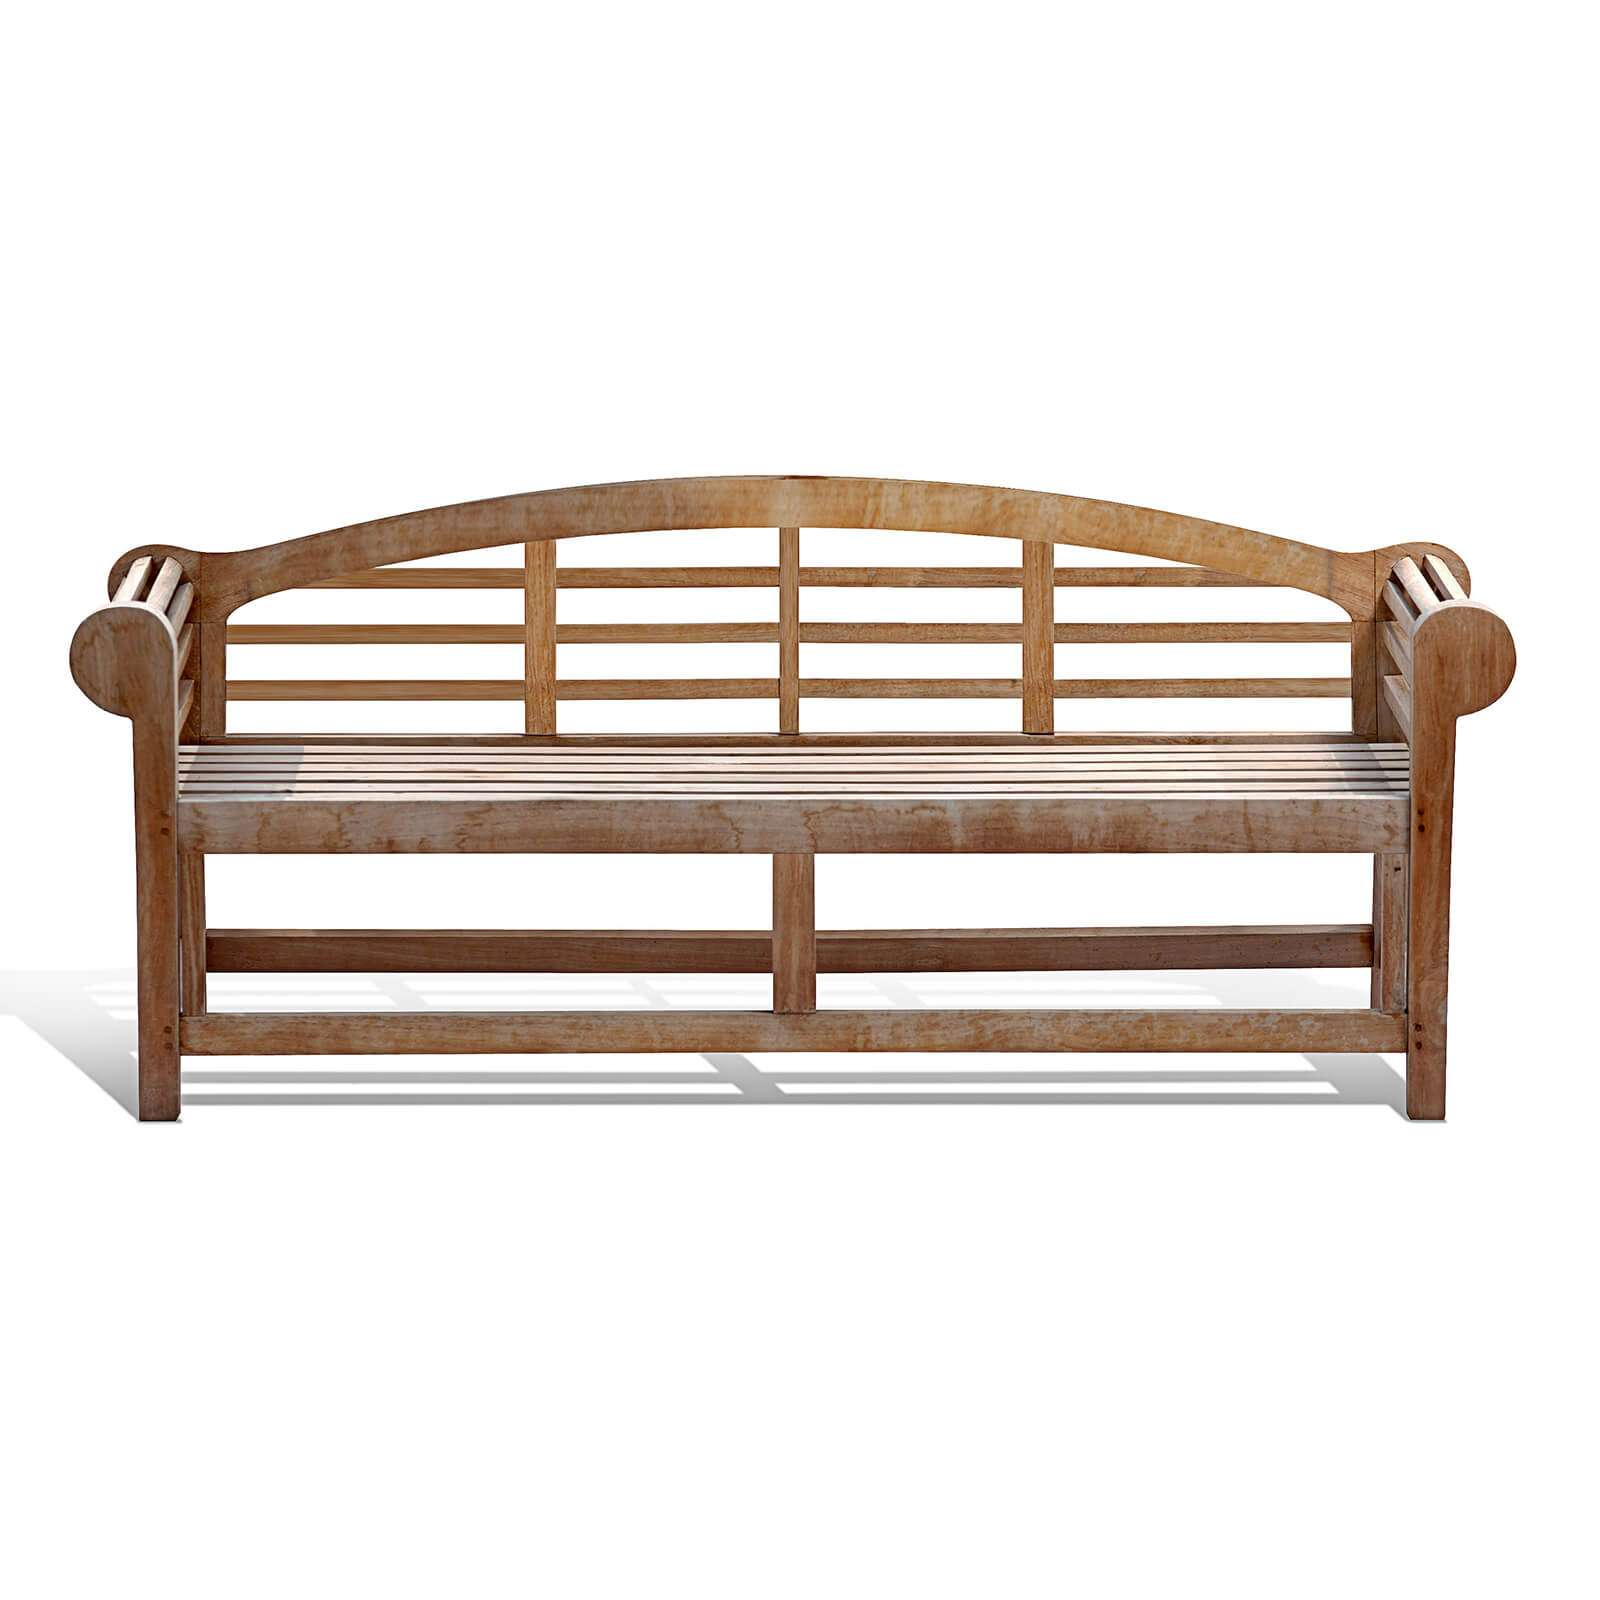 BAXTER GARDEN BENCH - STUART MEMBERY HOME COLLECTION